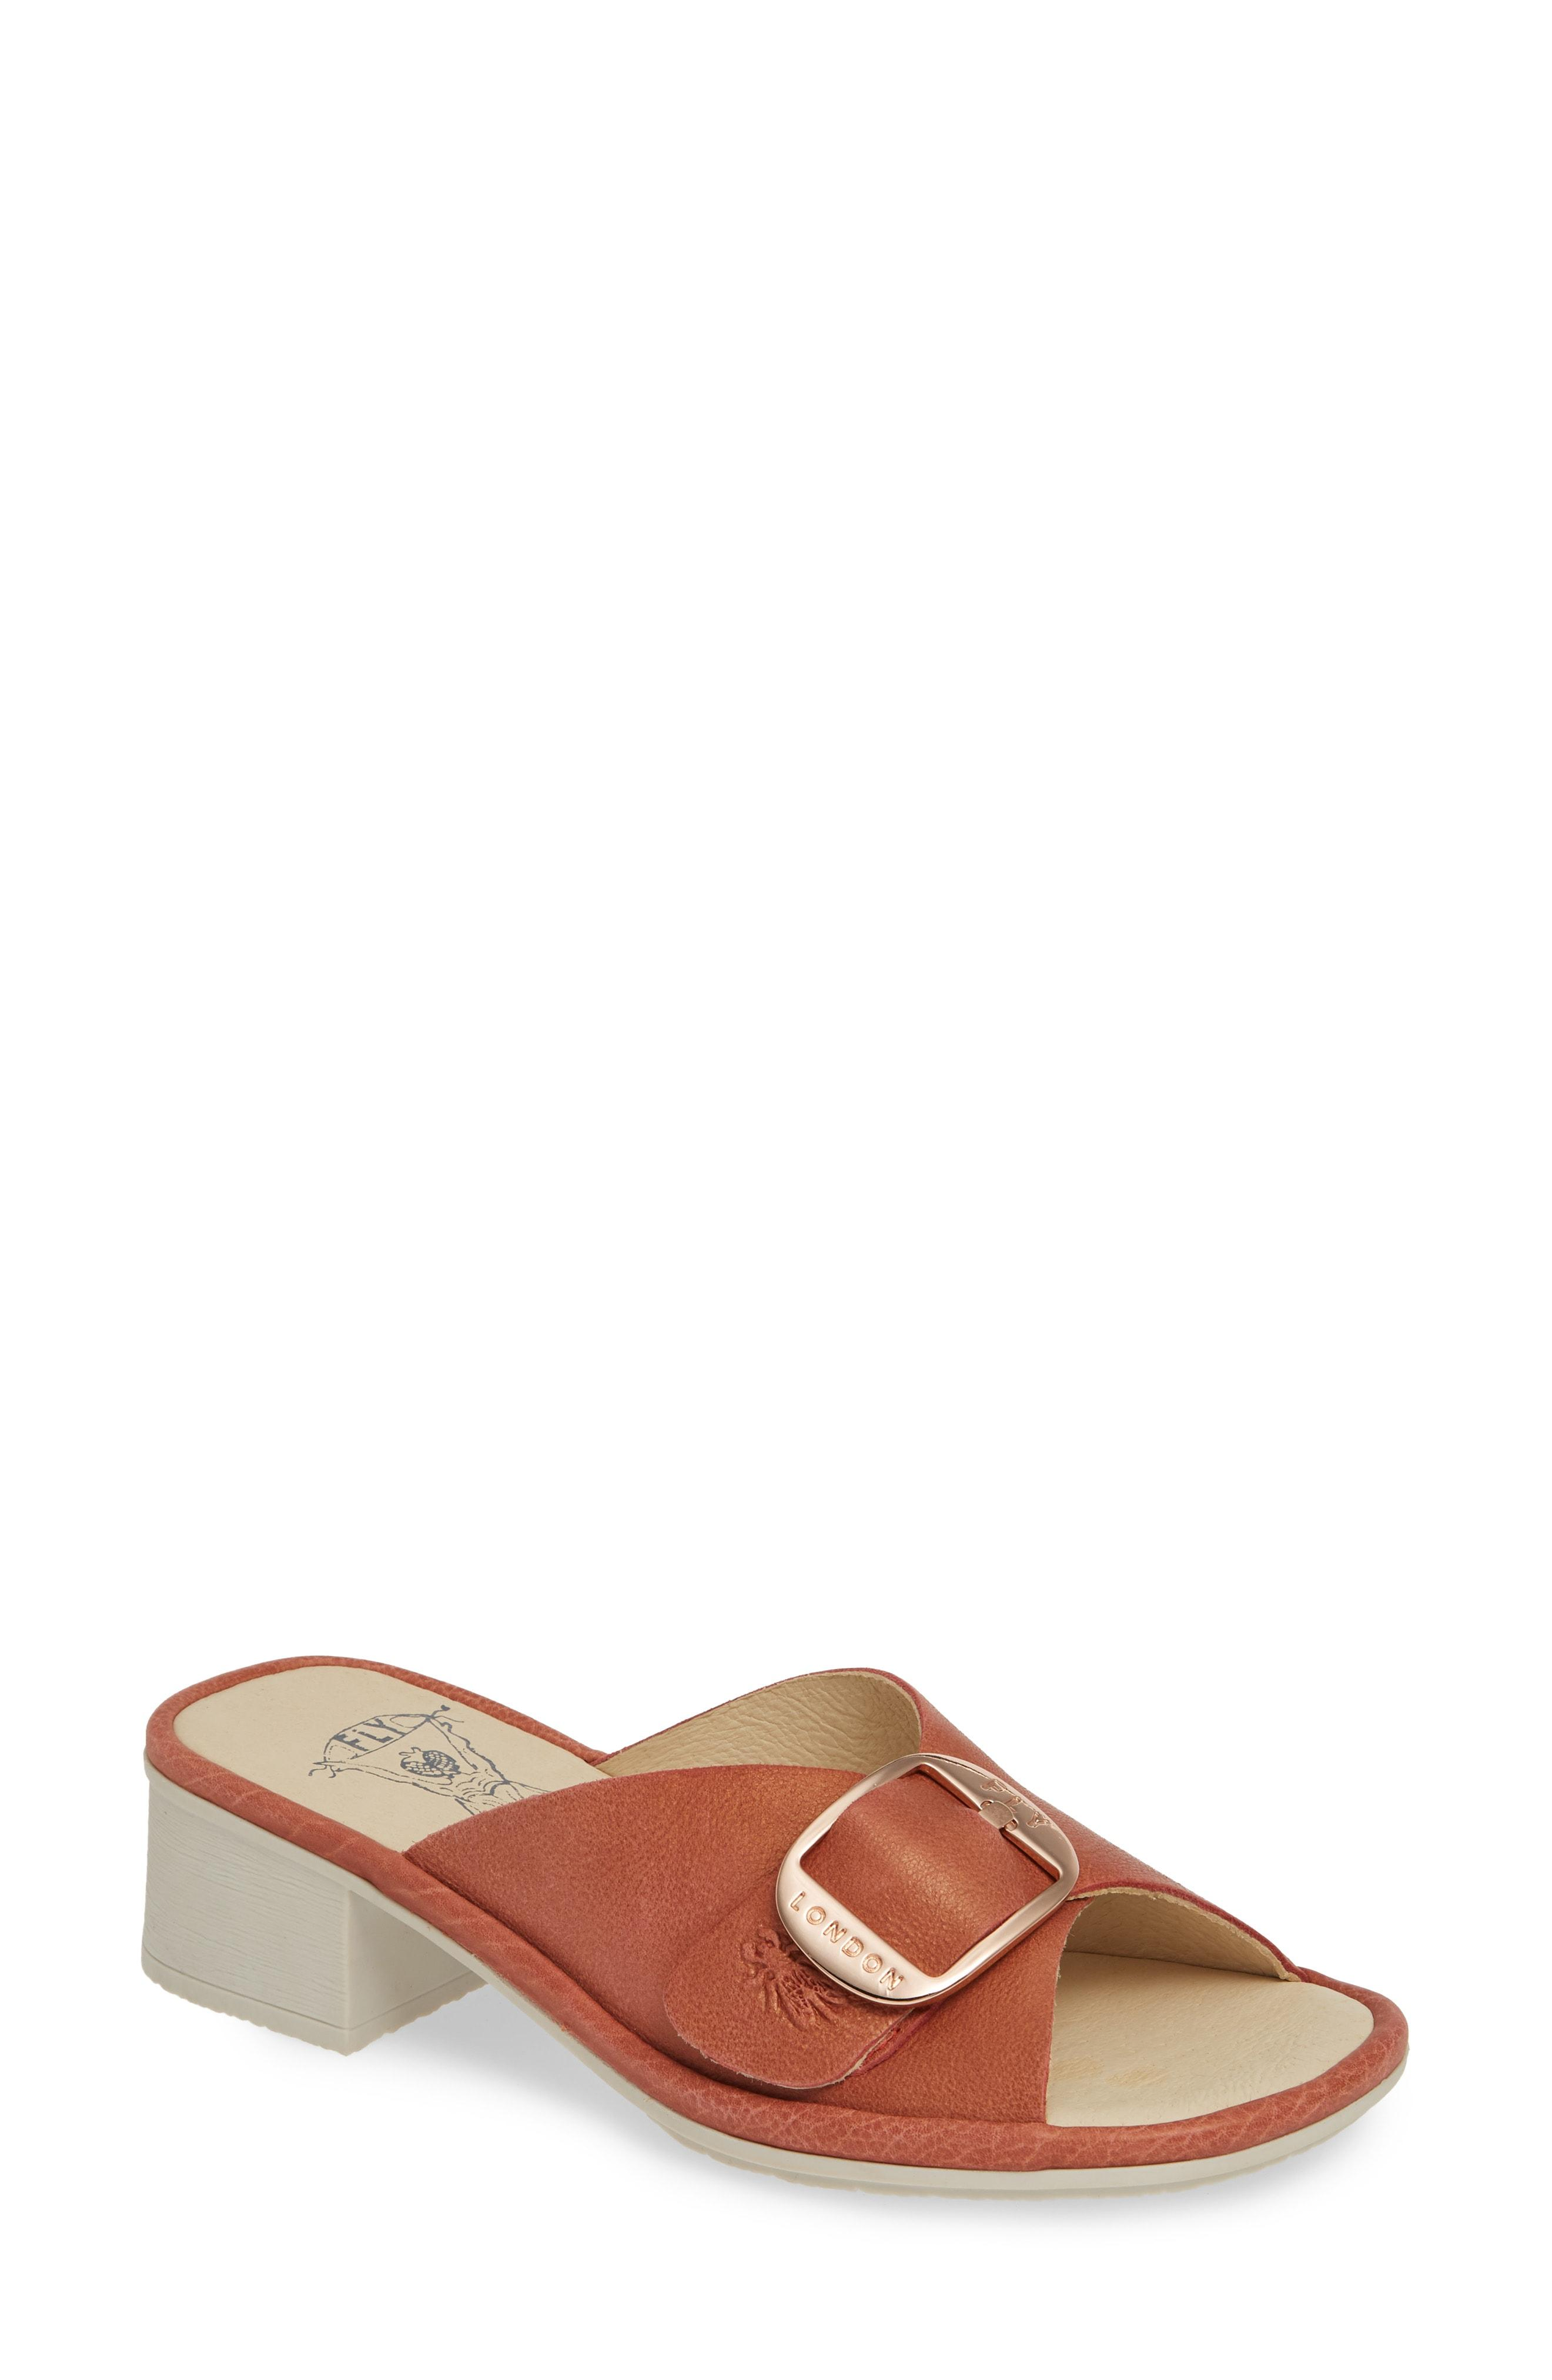 afa328d4d3fec Fly London. Women's Elax Slide Sandal